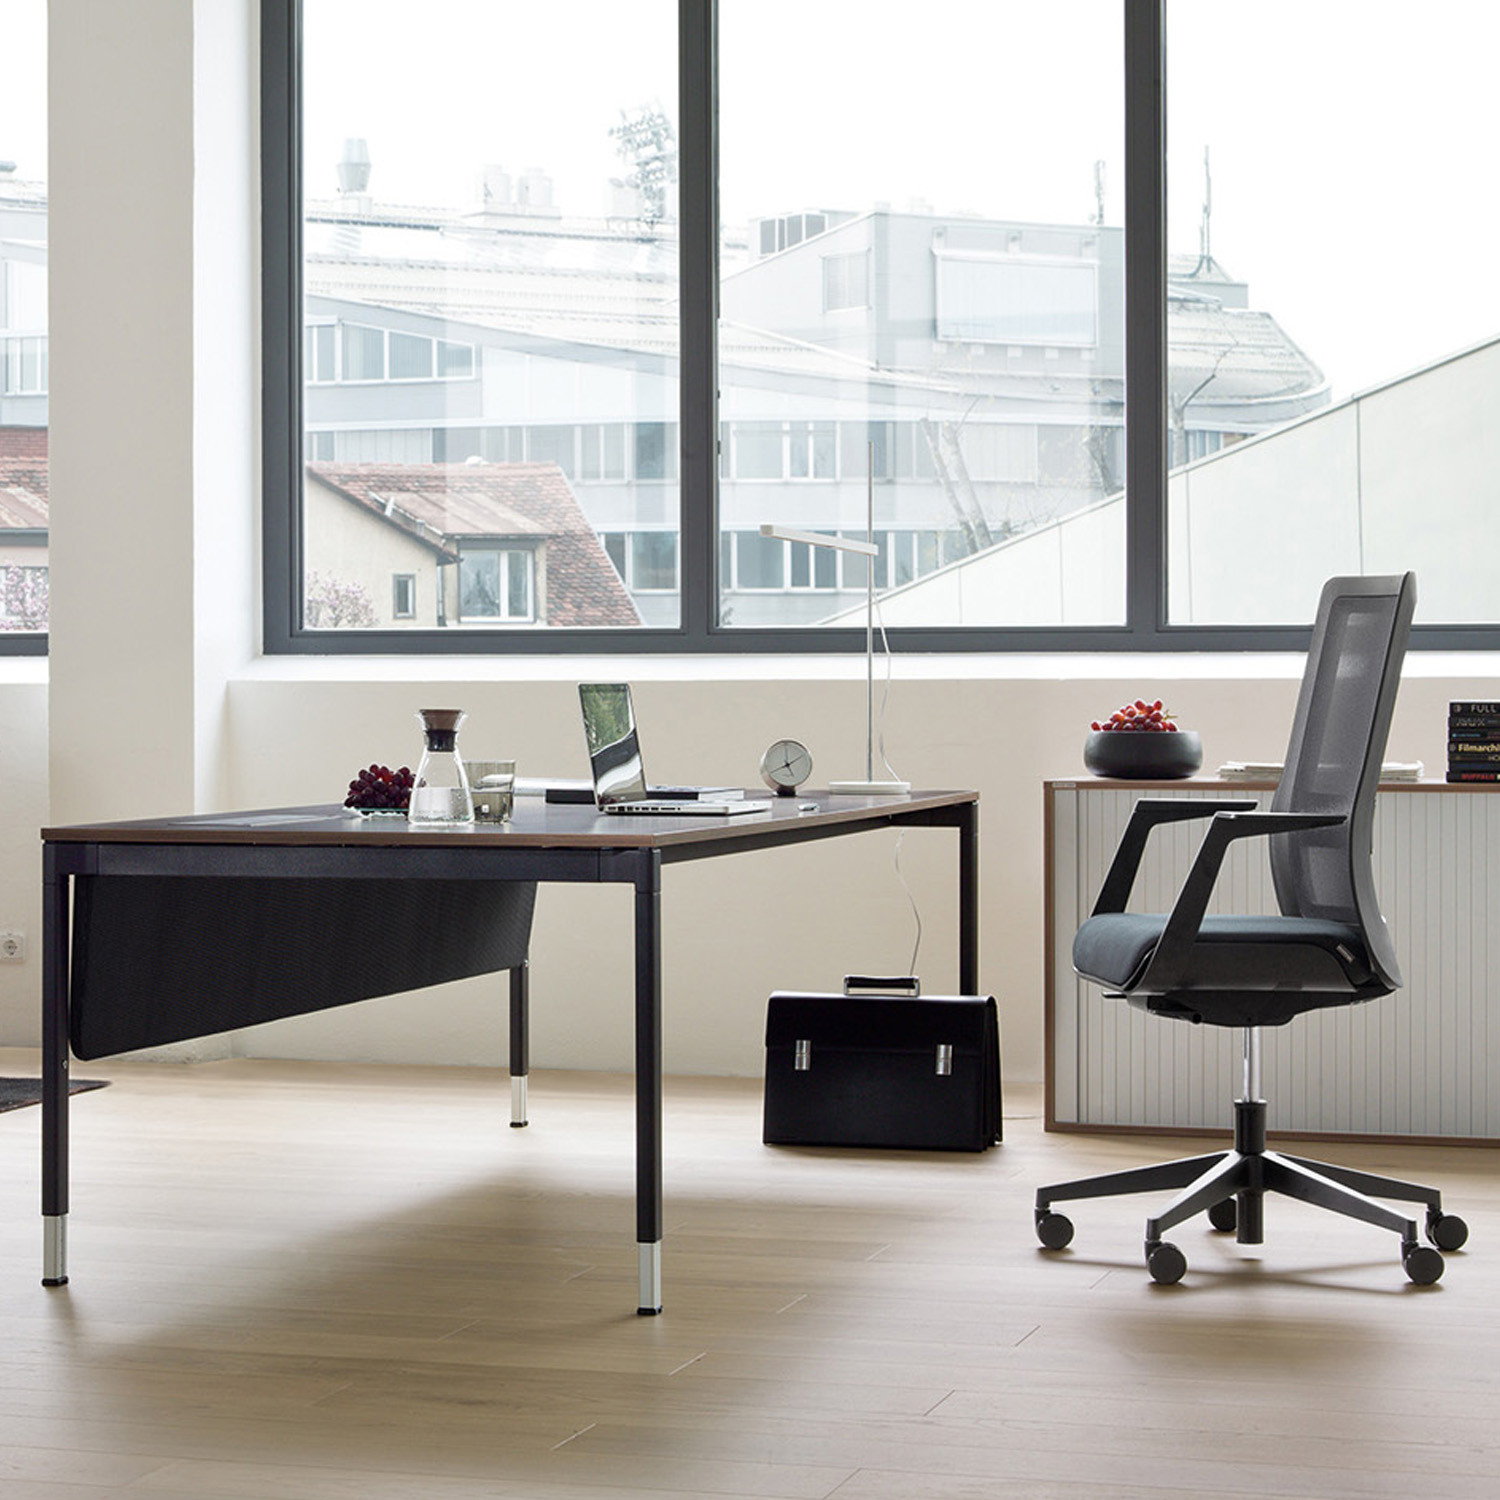 Poi Office Chair by Wiesner Hager